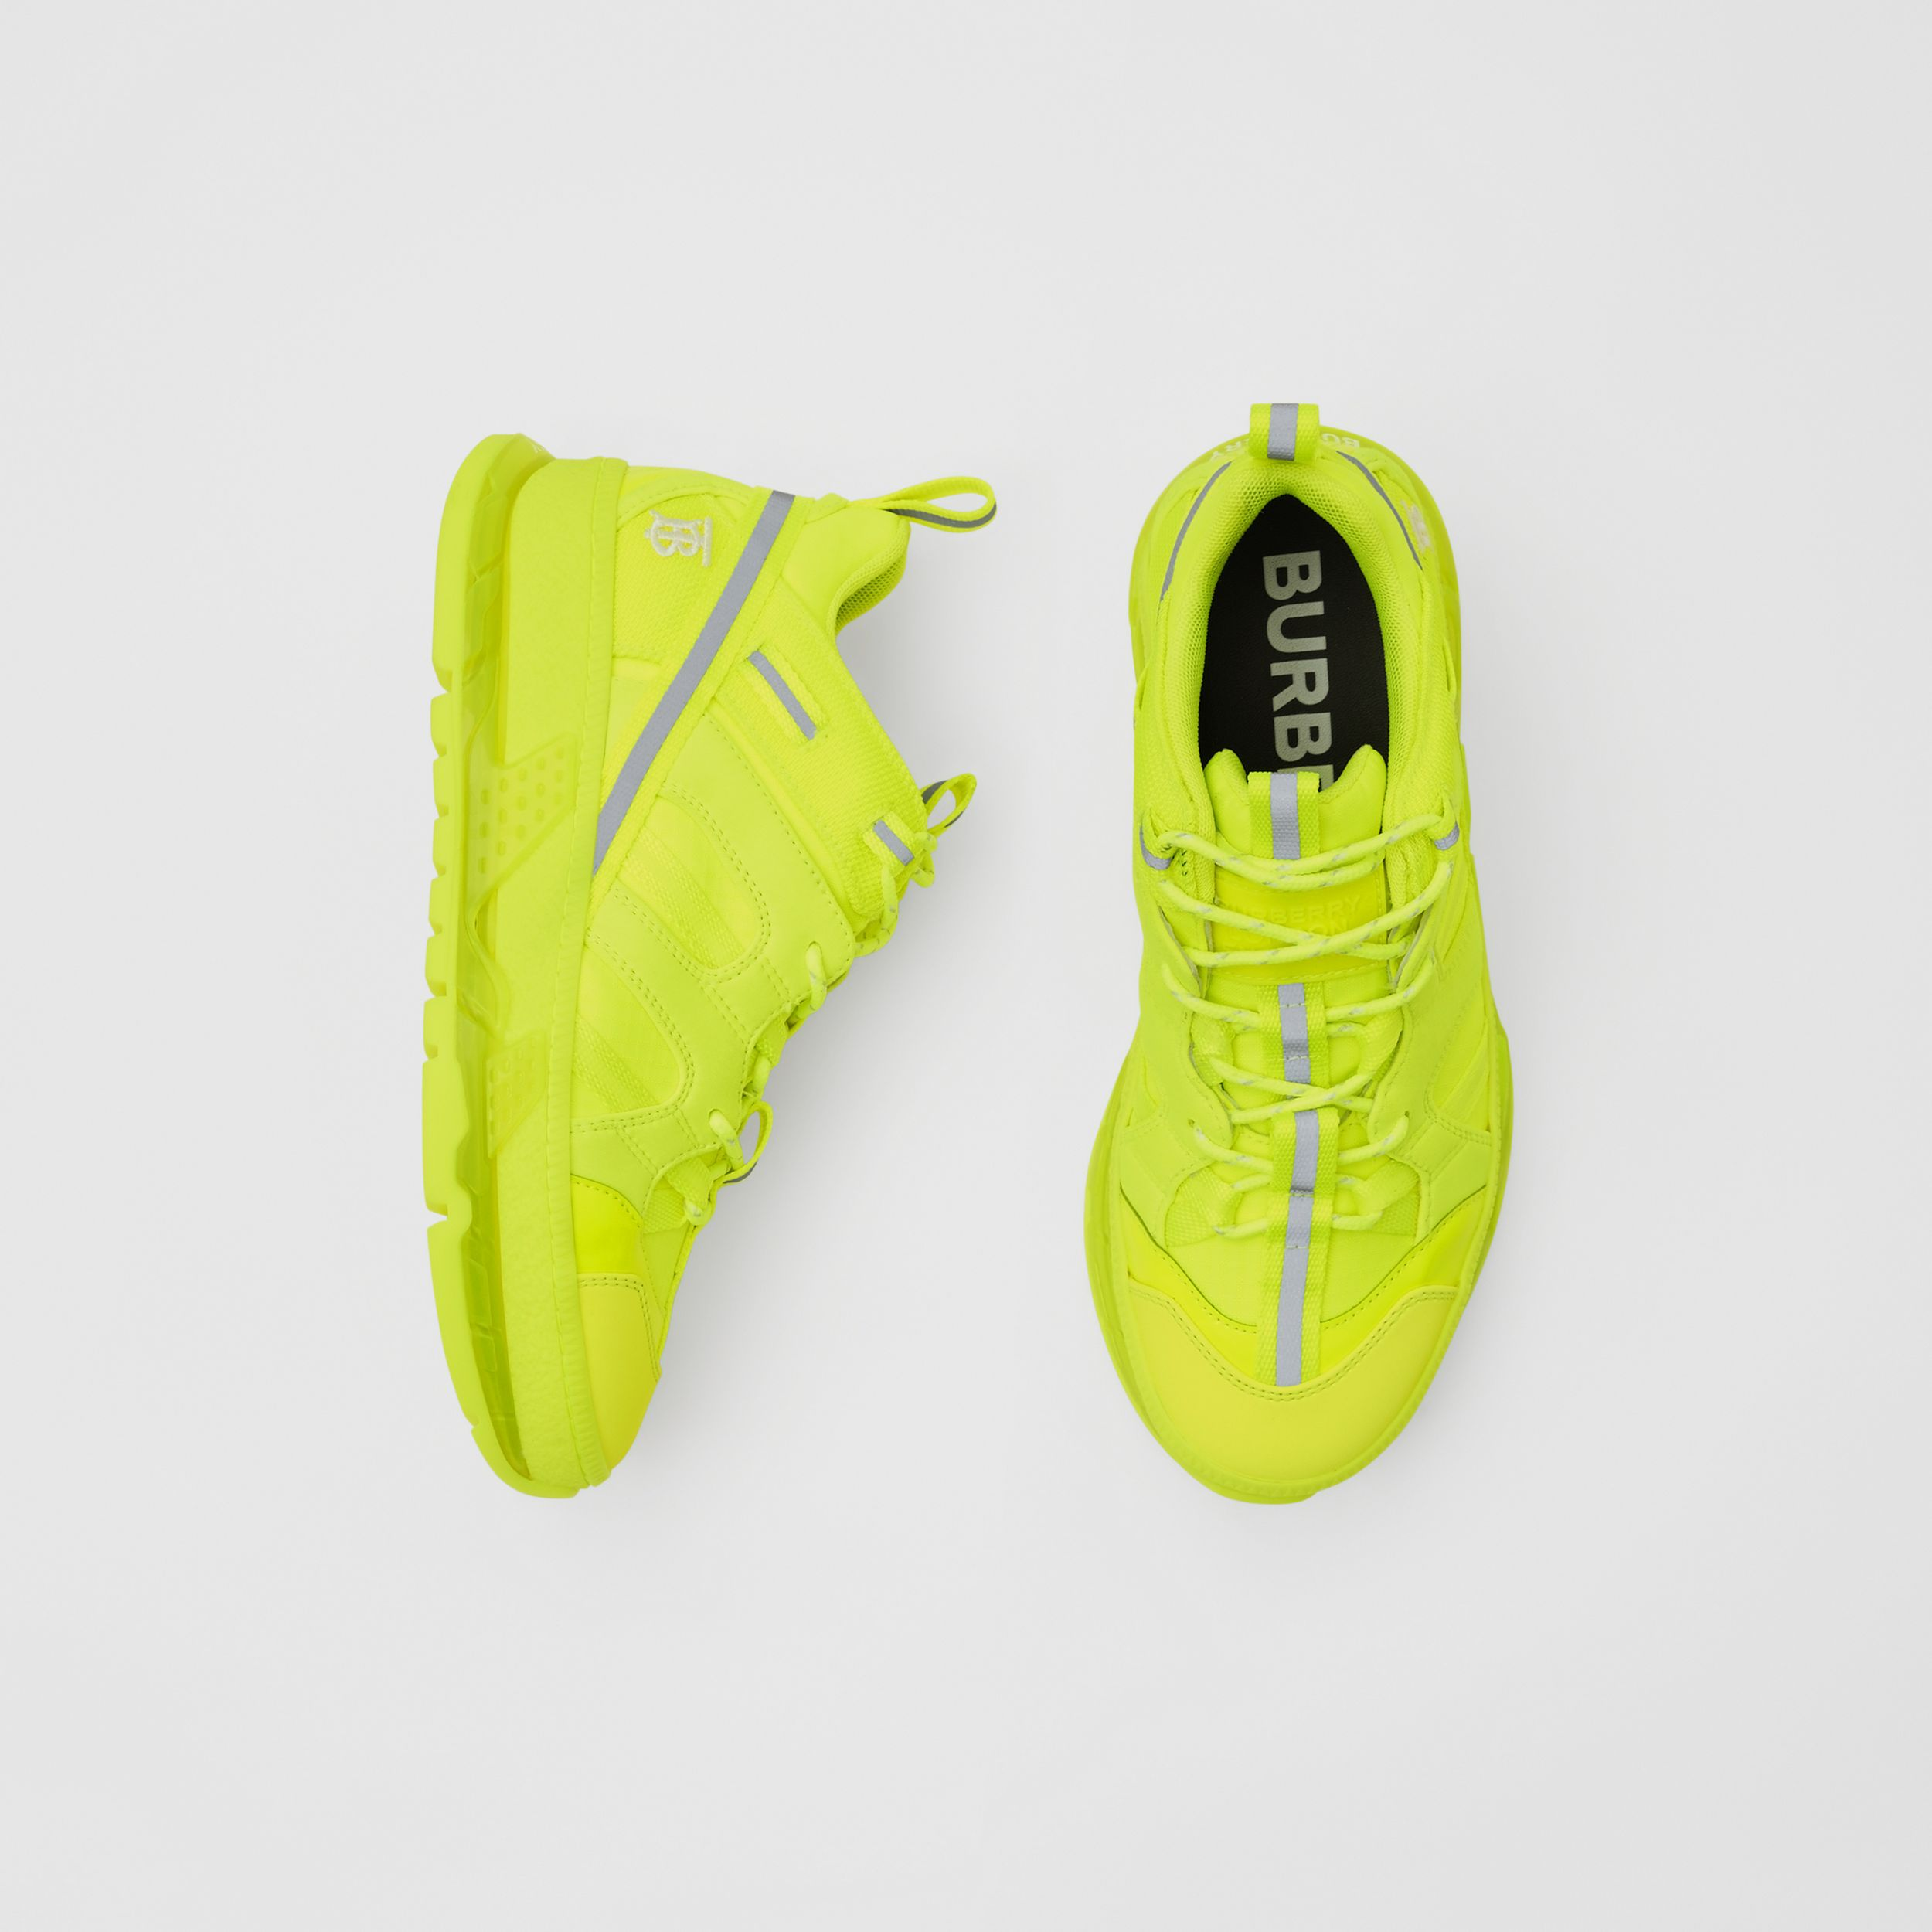 Nylon and Cotton Union Sneakers in Fluorescent Yellow - Women | Burberry - 1